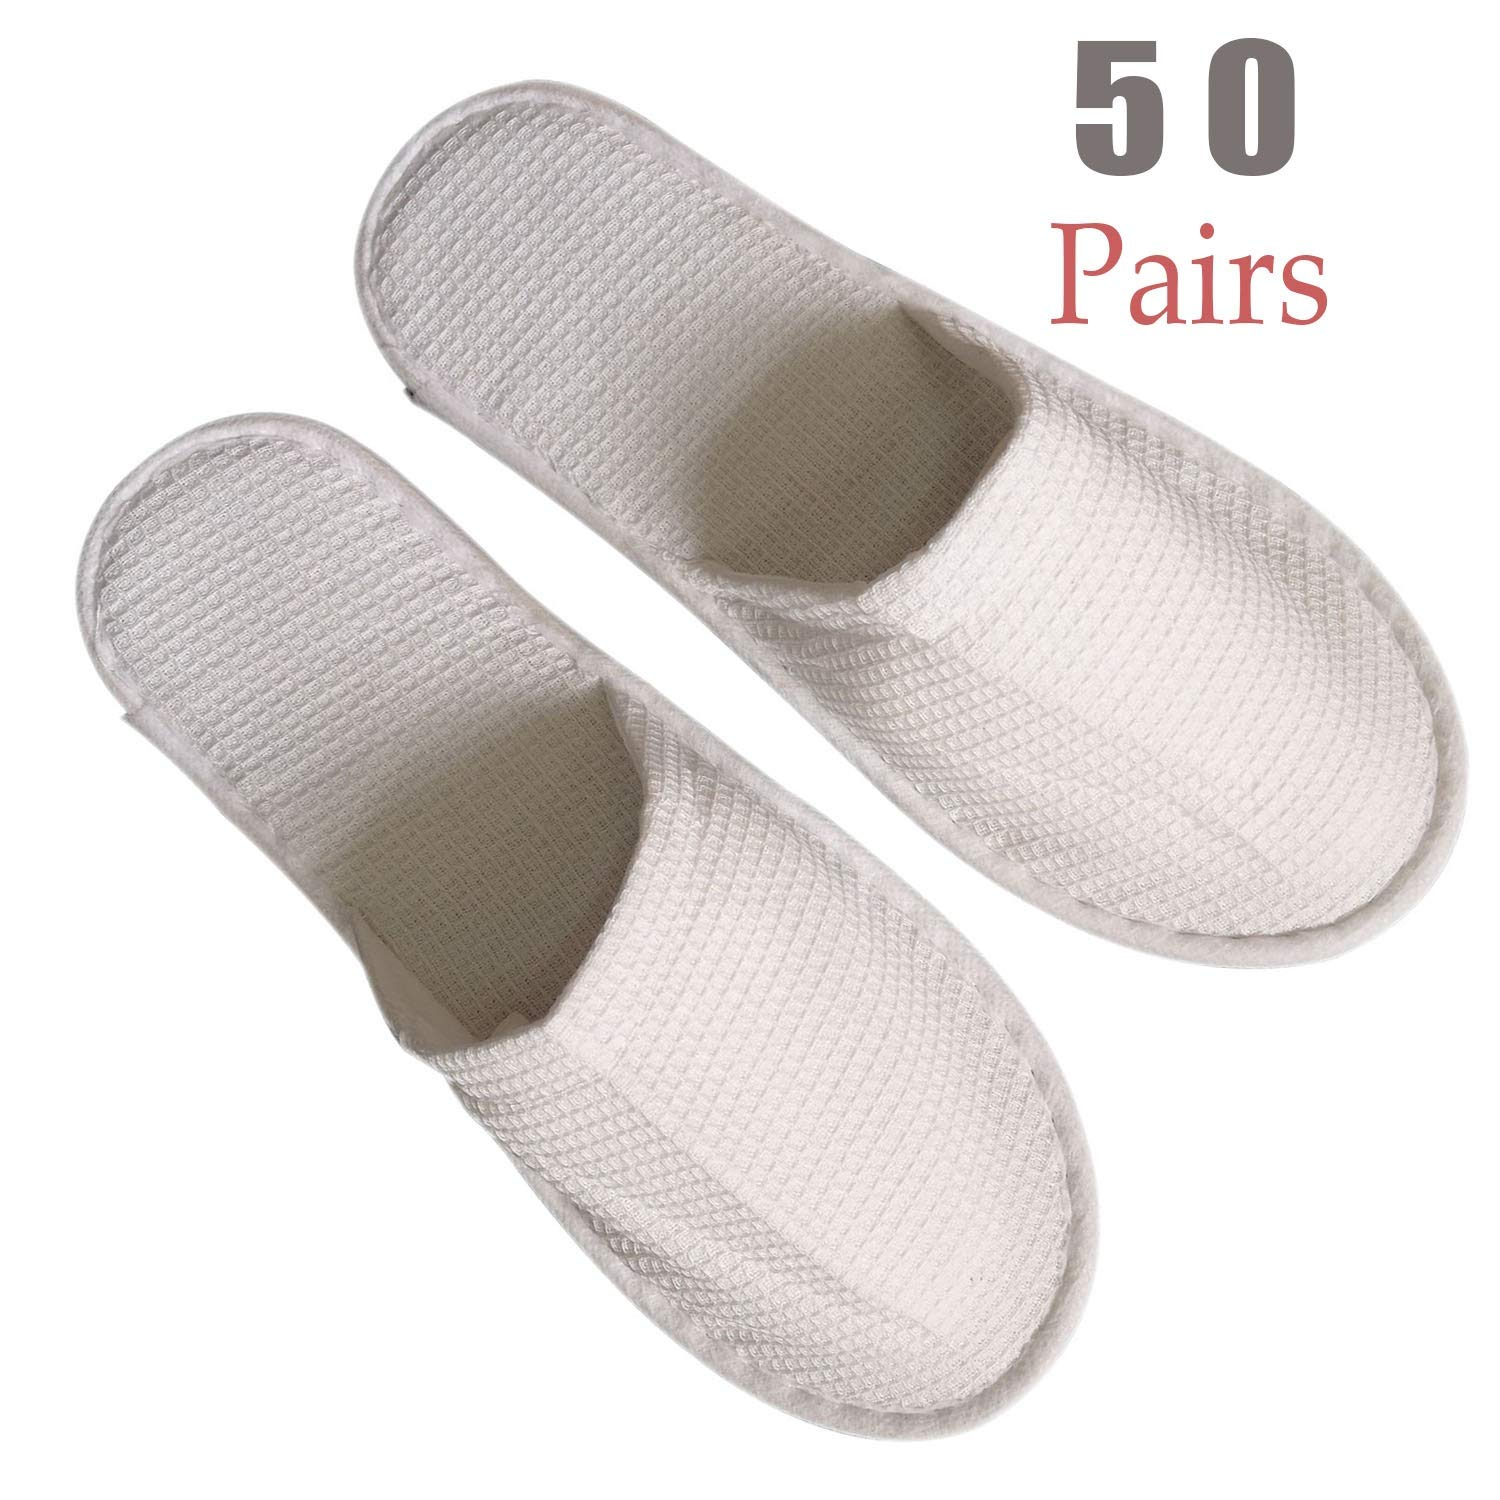 Waffle 50 Pairs Slippers Women and Men Disposable Portable Slippers, Women Slipper Hotel Disposable Spa Slippers Men Portable Comfortable Non-Slip Sole One Size Fit Most Men and Women Spa-